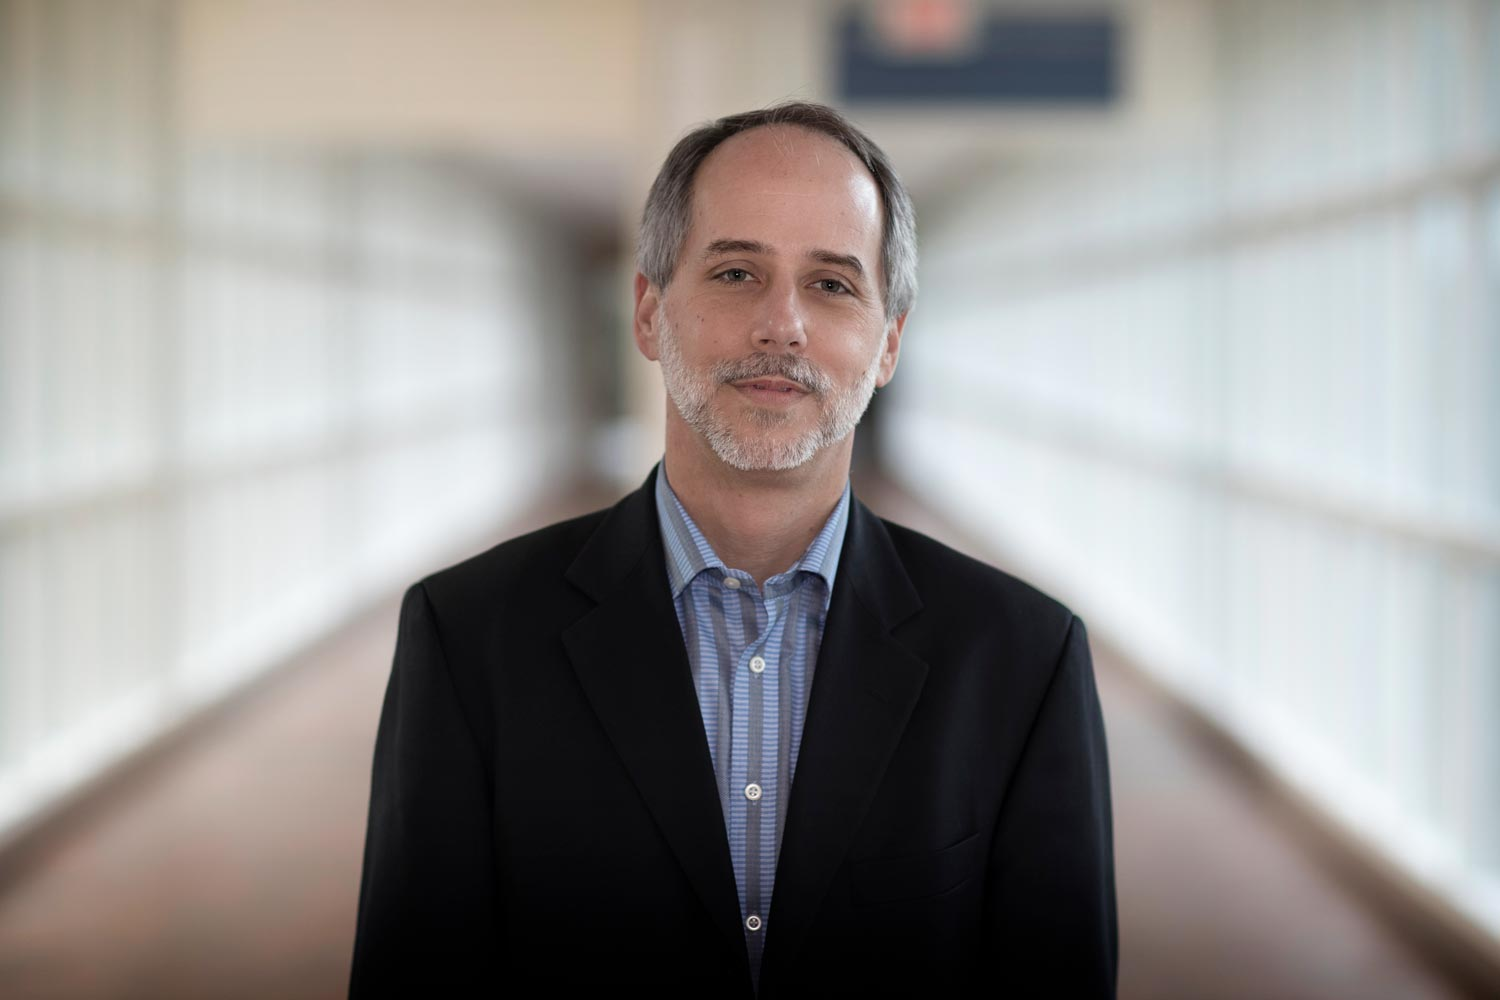 Jeffrey Holmes heads UVA's new Center for Engineering in Medicine.